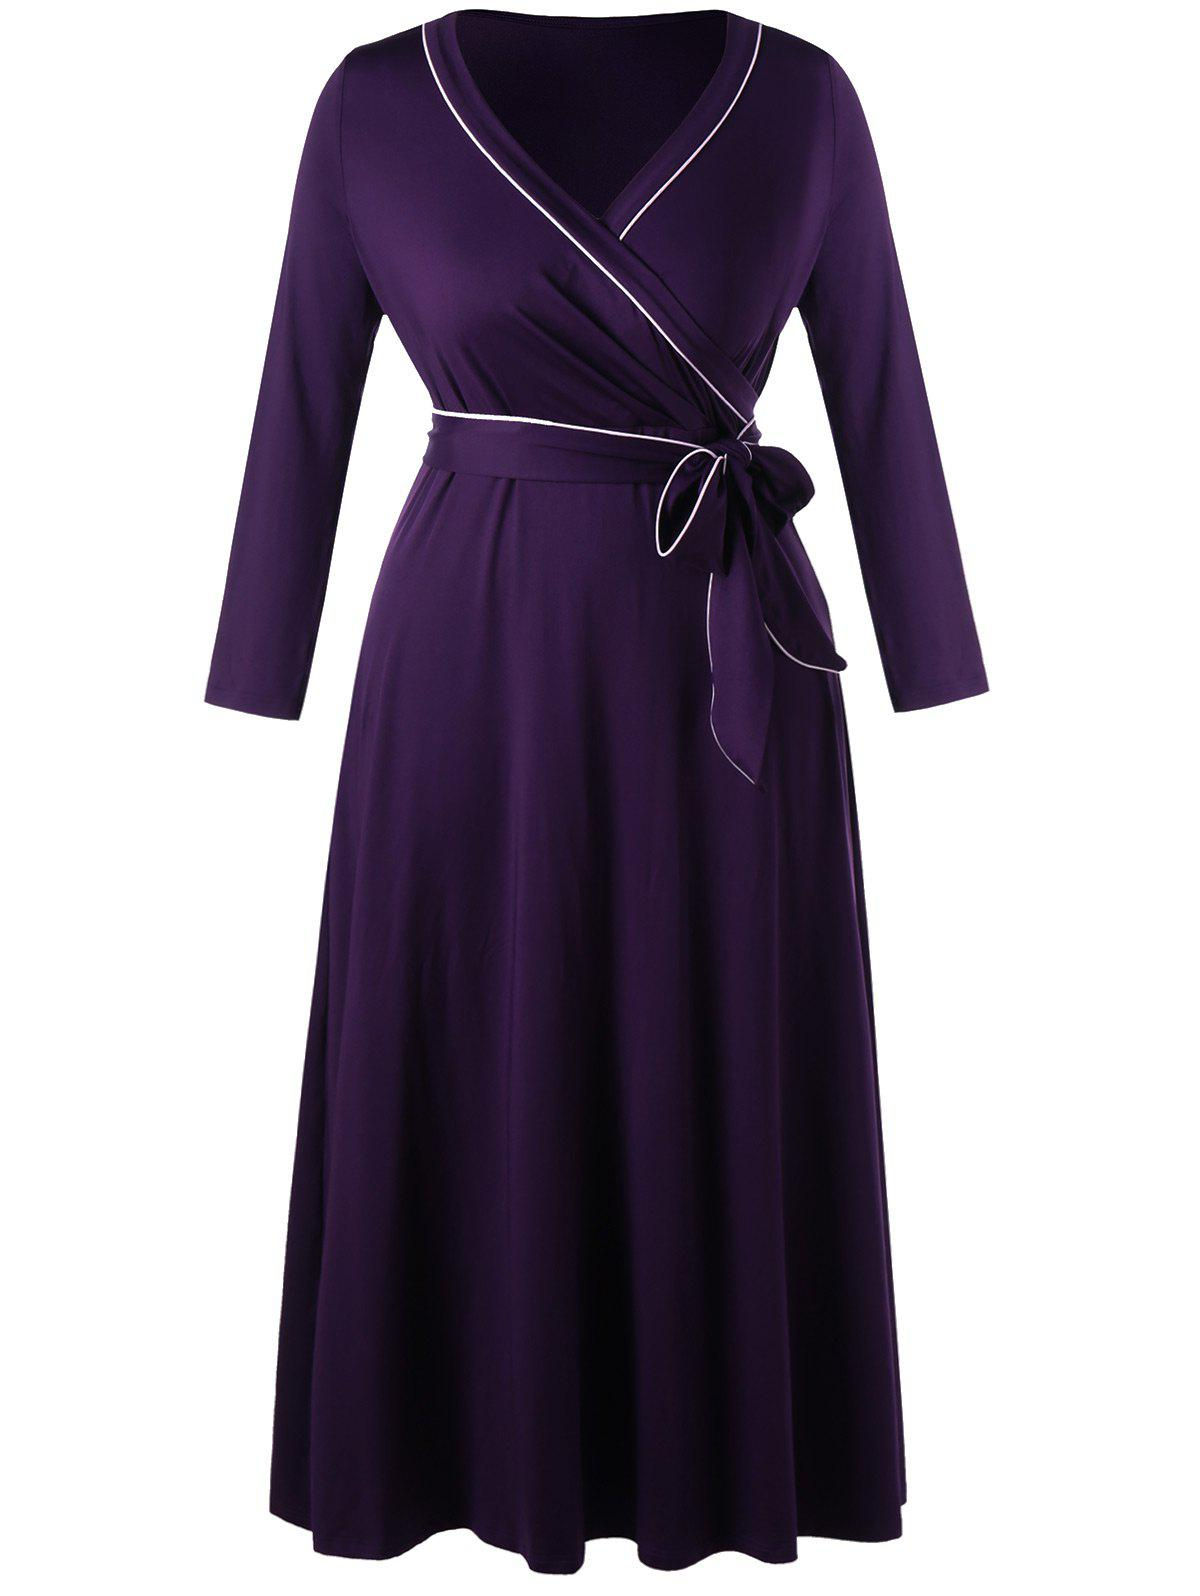 Plus Size Long Sleeve Formal Wrap DressWOMEN<br><br>Size: 5XL; Color: CONCORD; Style: Brief; Material: Polyester,Spandex; Silhouette: Sheath; Dresses Length: Floor-Length; Neckline: V-Neck; Sleeve Length: Long Sleeves; Pattern Type: Others; With Belt: Yes; Season: Fall,Spring; Weight: 0.6490kg; Package Contents: 1 x Dress  1 x Belt;